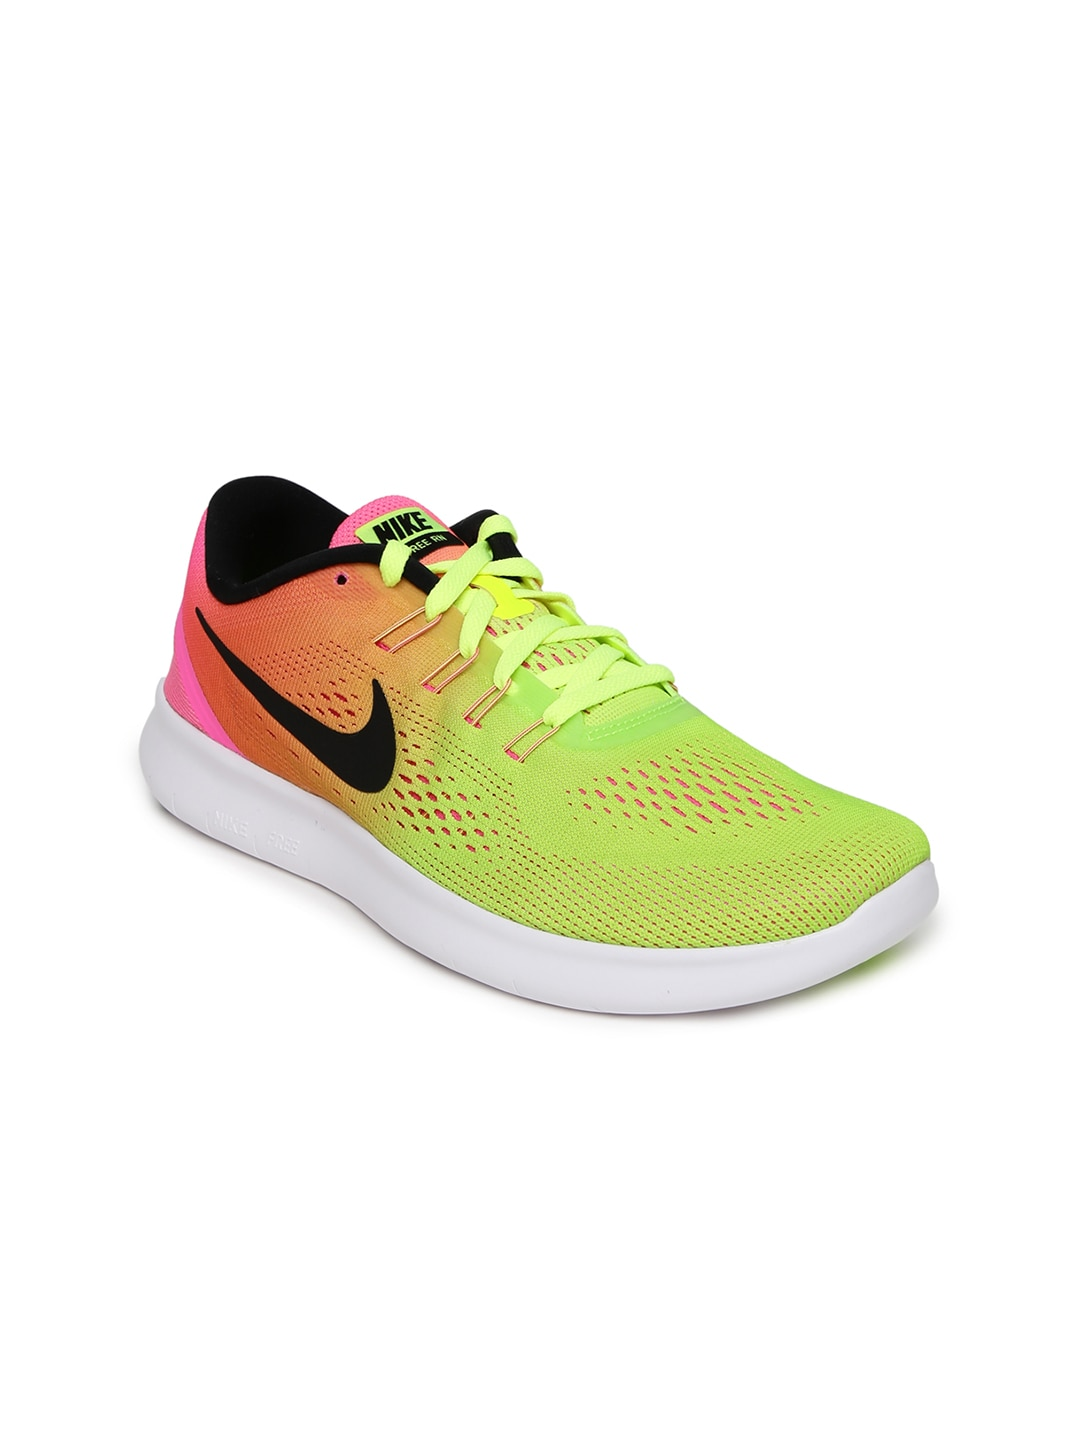 945e6e798a0e6 Nike 844630-999 Women Fluorescent Green And Pink Free Rn Oc Running Shoes-  Price in India